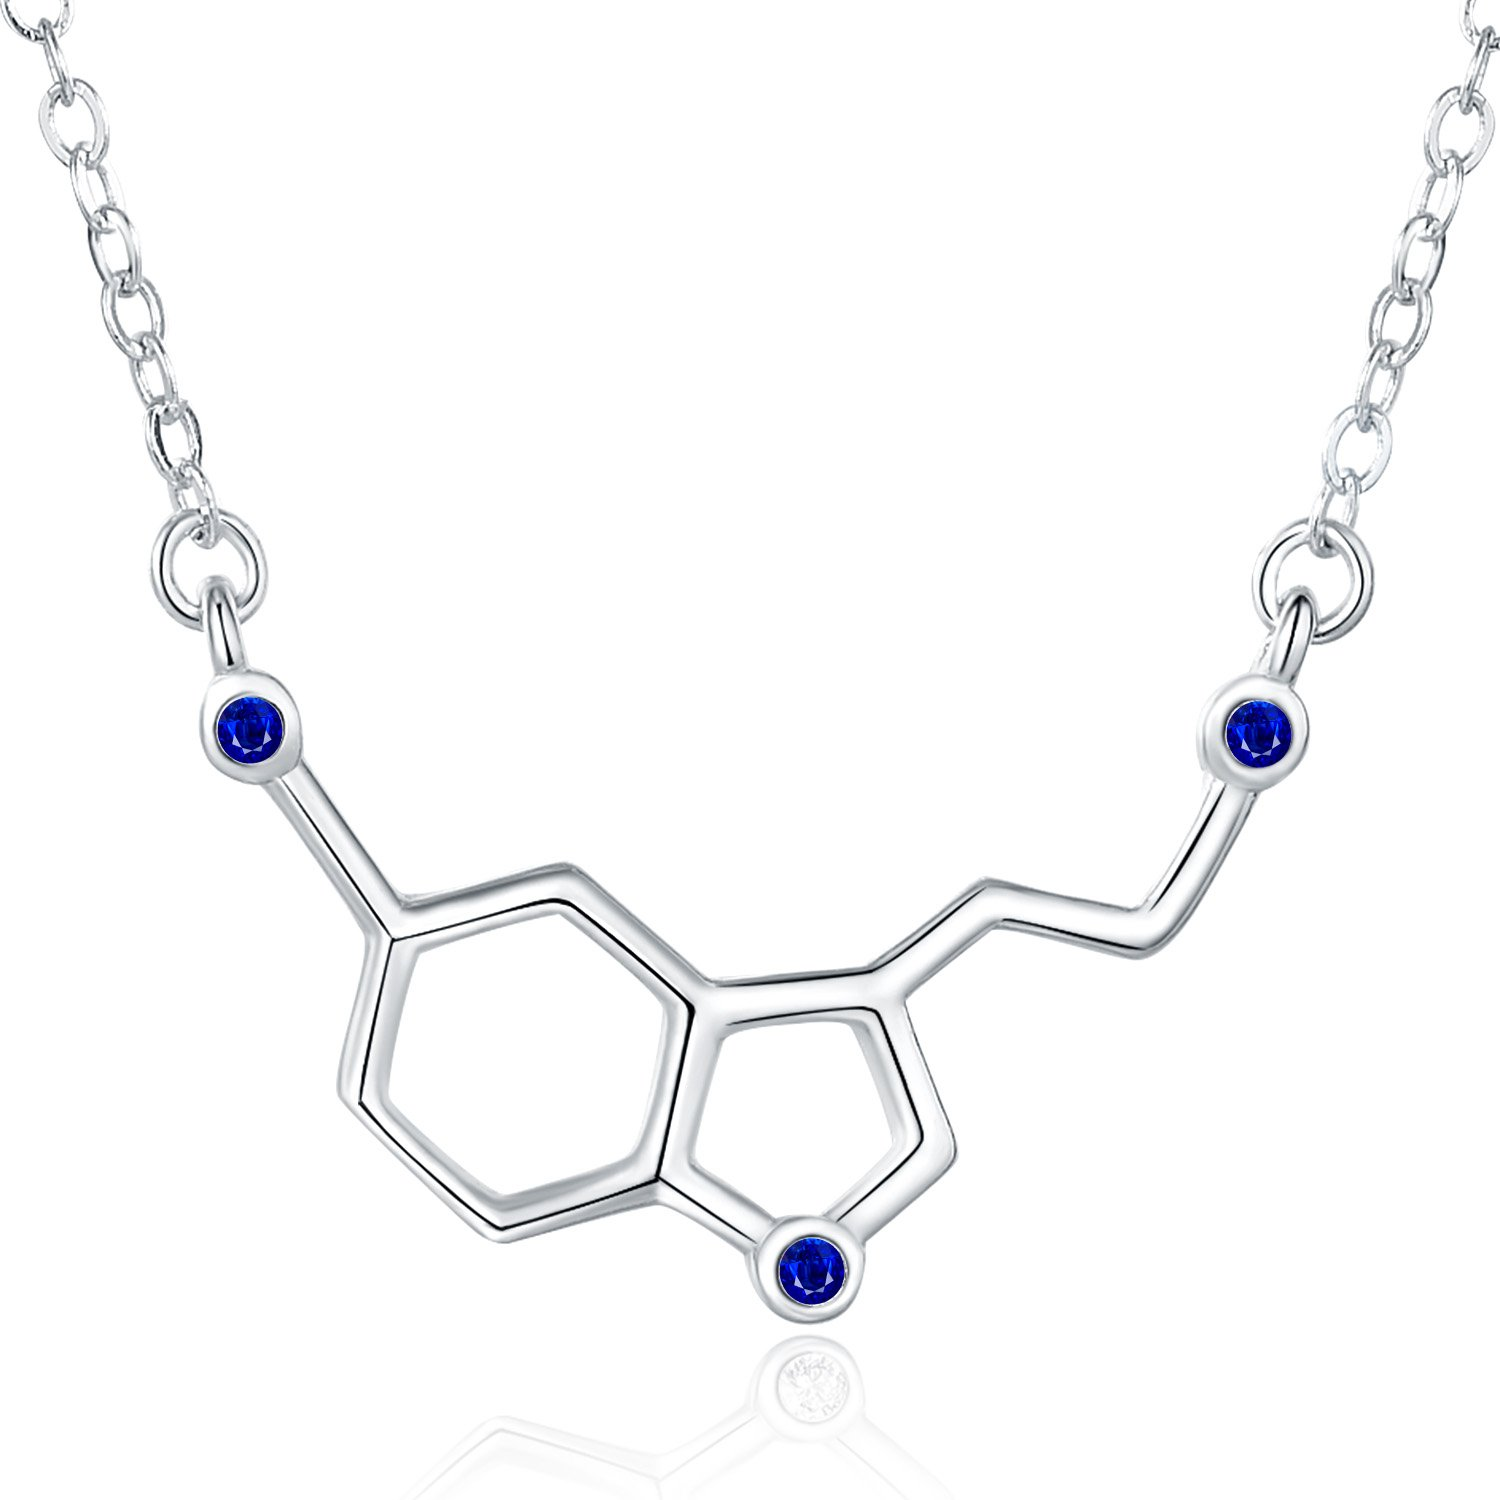 b225e1ead1322 Rosa Vila Happiness Serotonin Molecule Necklace with Gems for Women, Ideal  Necklaces for Teacher, Professor, Chemistry Grad, and Science Jewelry ...